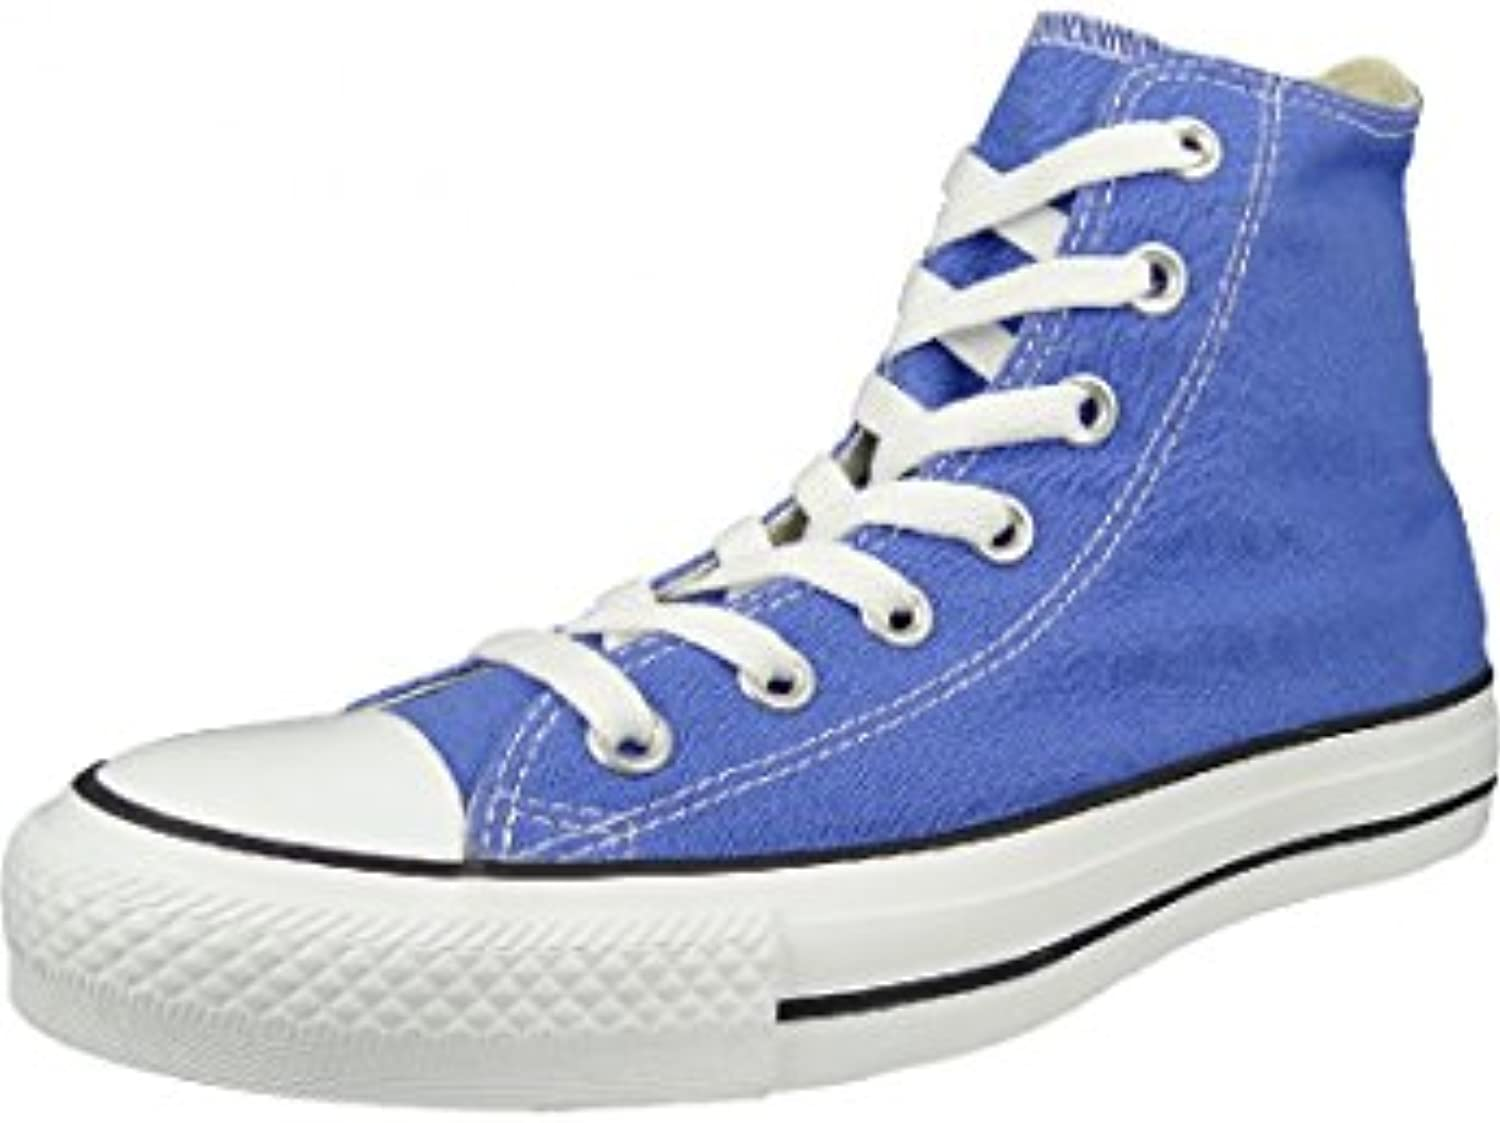 Converse Chuck Taylor All Star 015850 550 5  Unisex   Erwachsene Sneakers